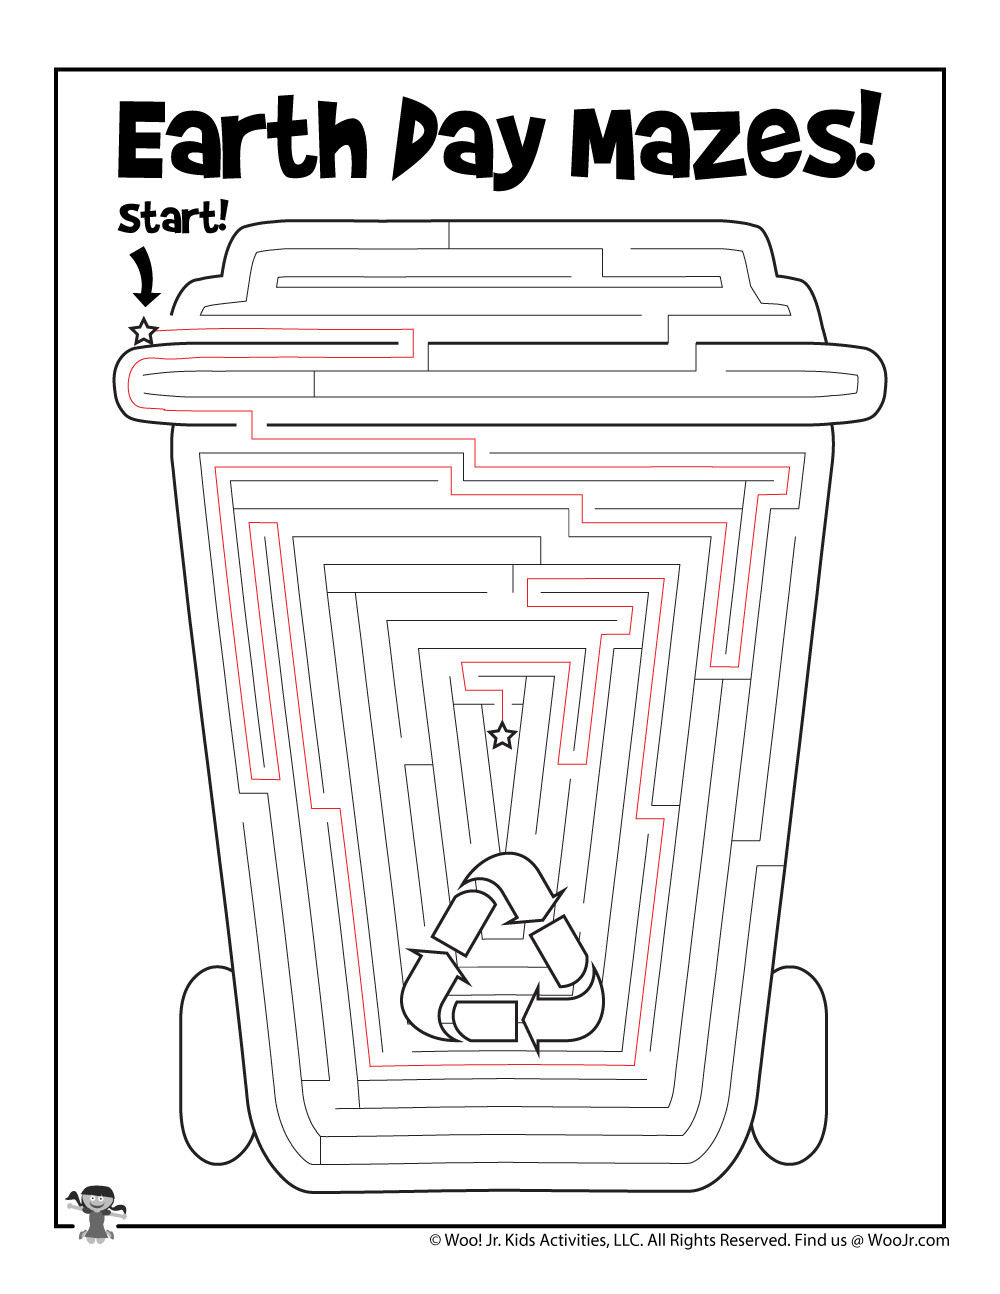 Recycling Worksheets for Preschoolers Recycled Cup Earth Day Maze Worksheet for Kids Key